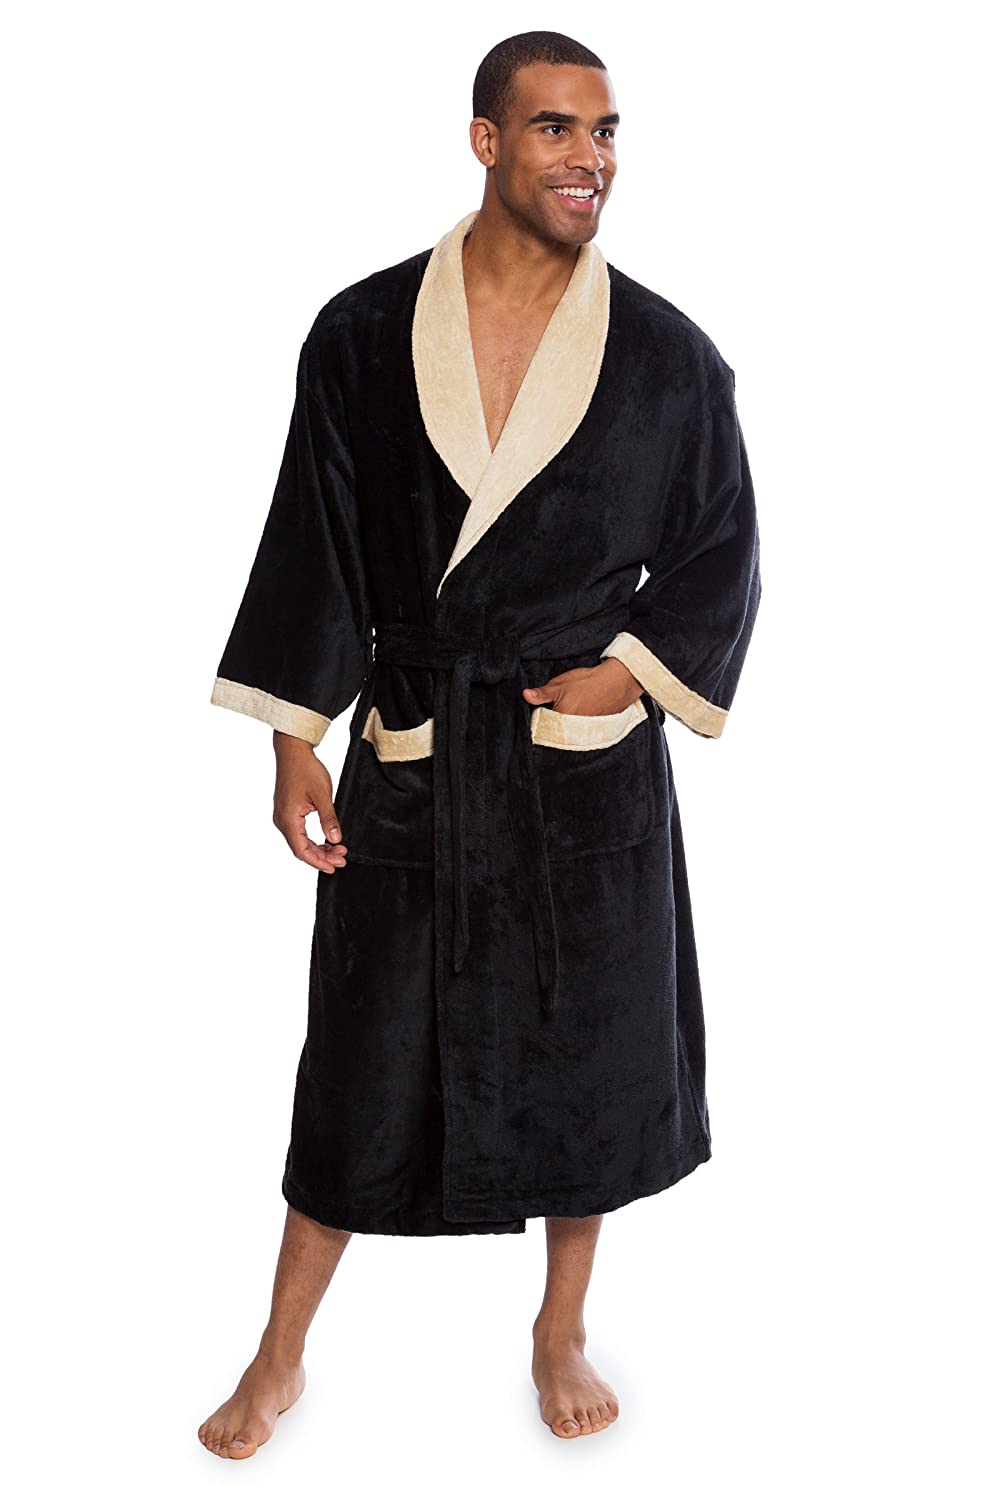 fbf7433f23 Texere Men s Terry Cloth Bath Robe - Comfortable Spa Gift for Him  (Turilano) at Amazon Men s Clothing store